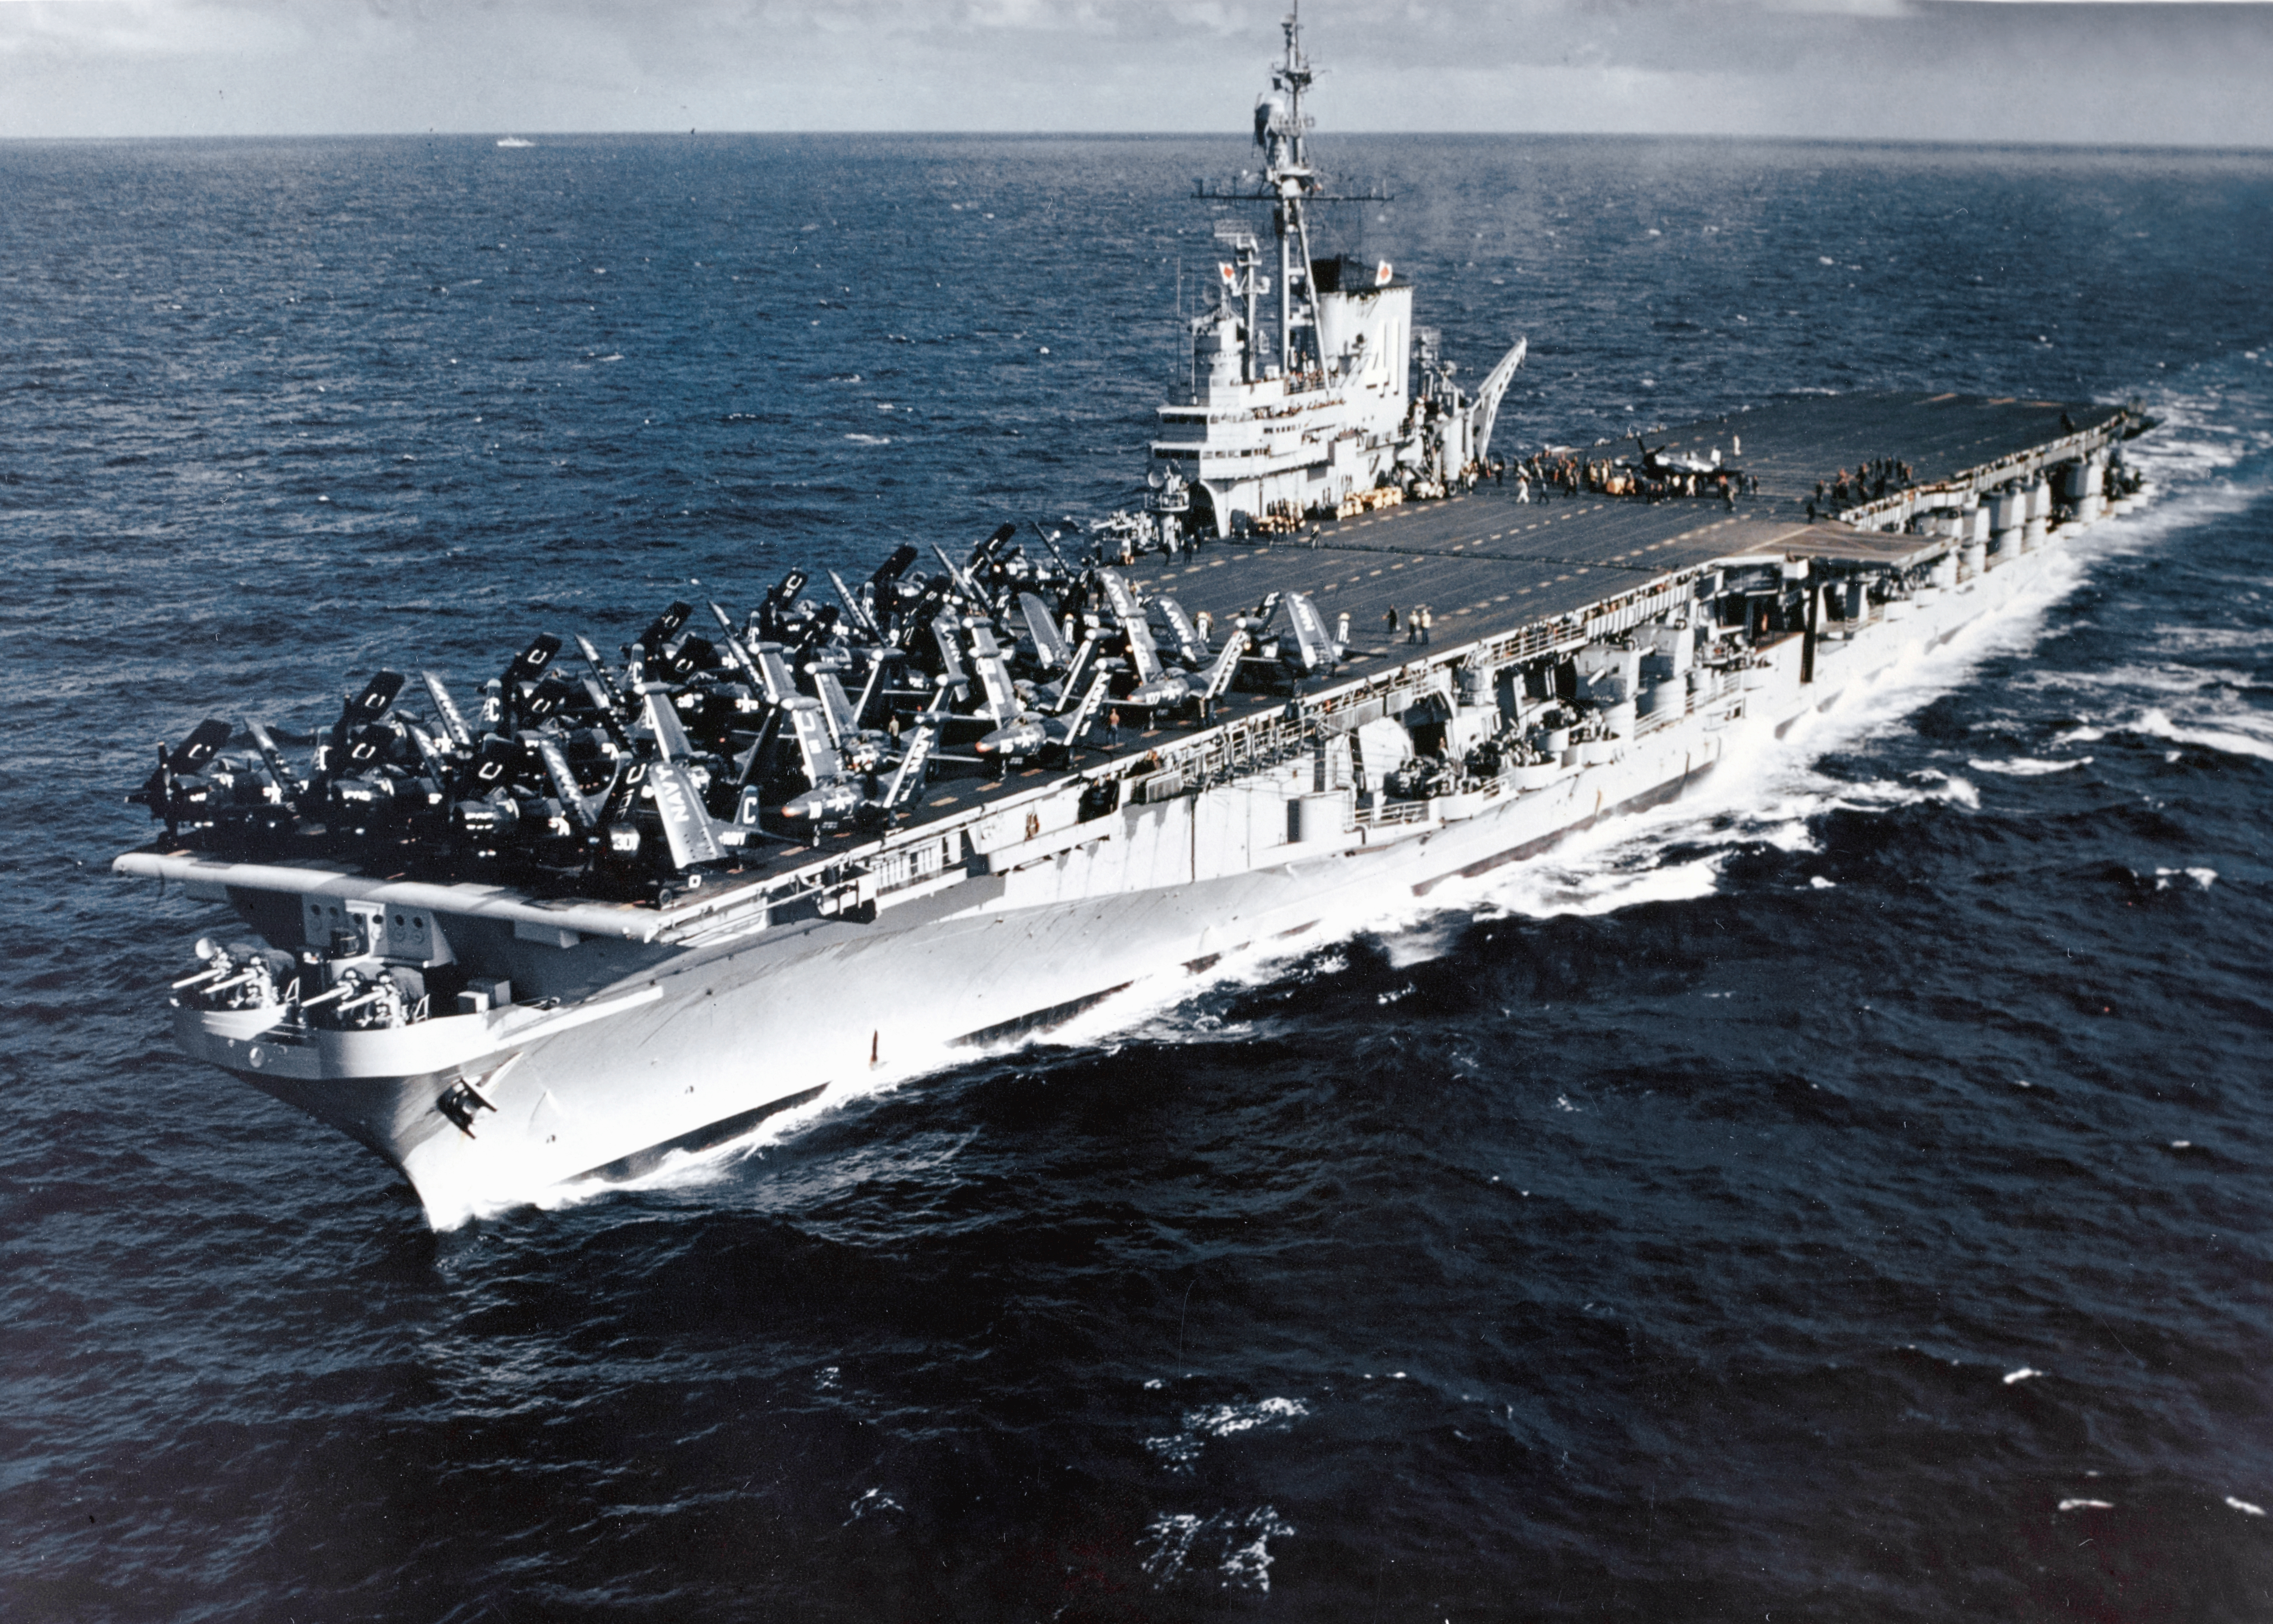 Midway-class aircraft carrier - Wikipedia